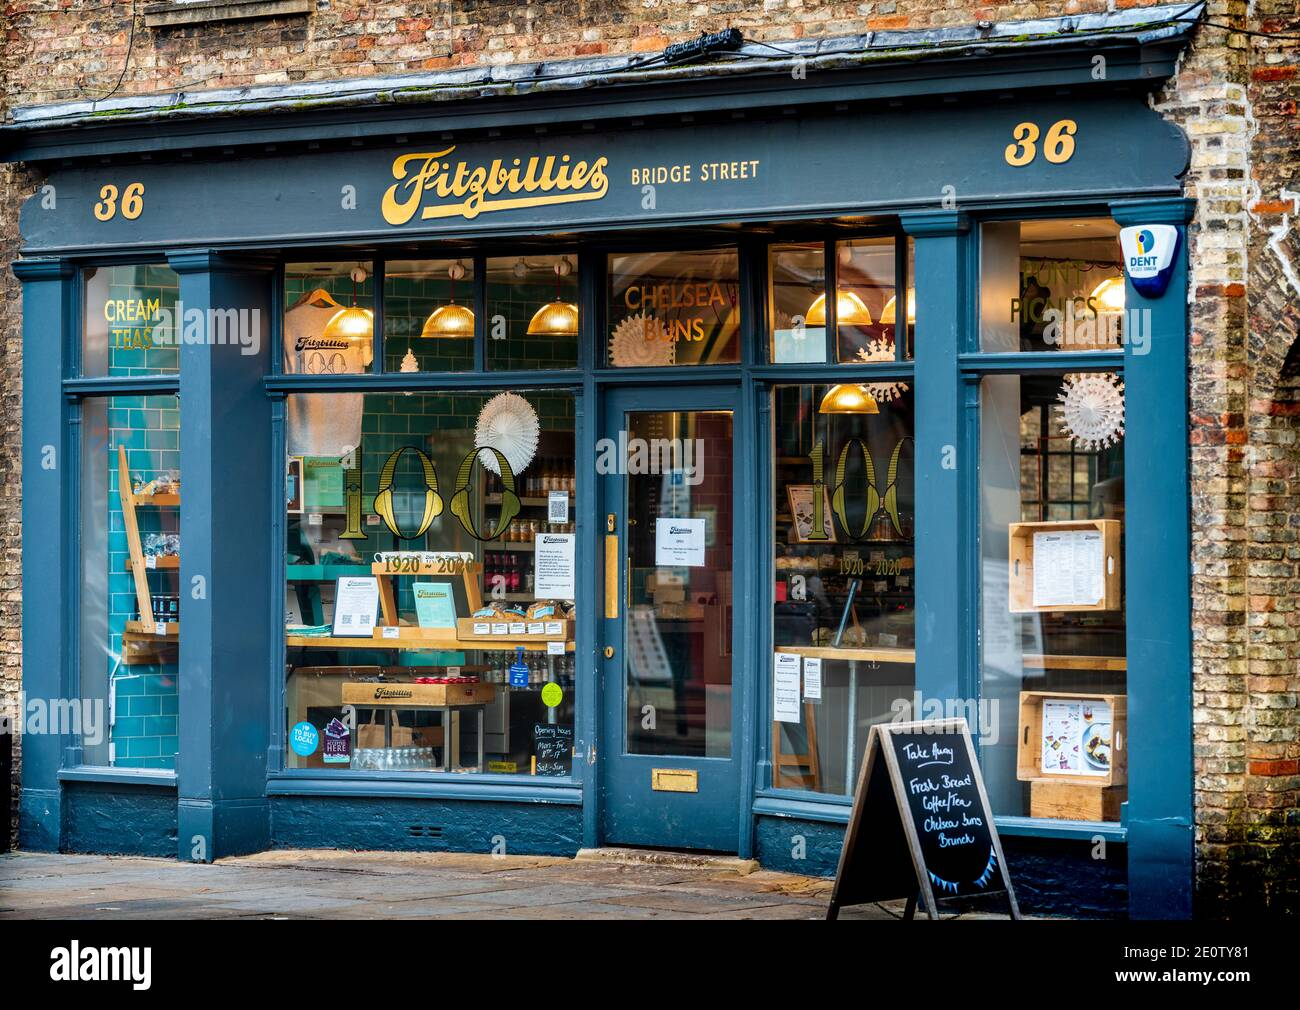 Fitzbillies Cambridge - Fitzbillies Cake Shop and Cafe Bridge Street Cambridge - Fittzbillies is famous for its Sticky Chelsea Buns Stock Photo